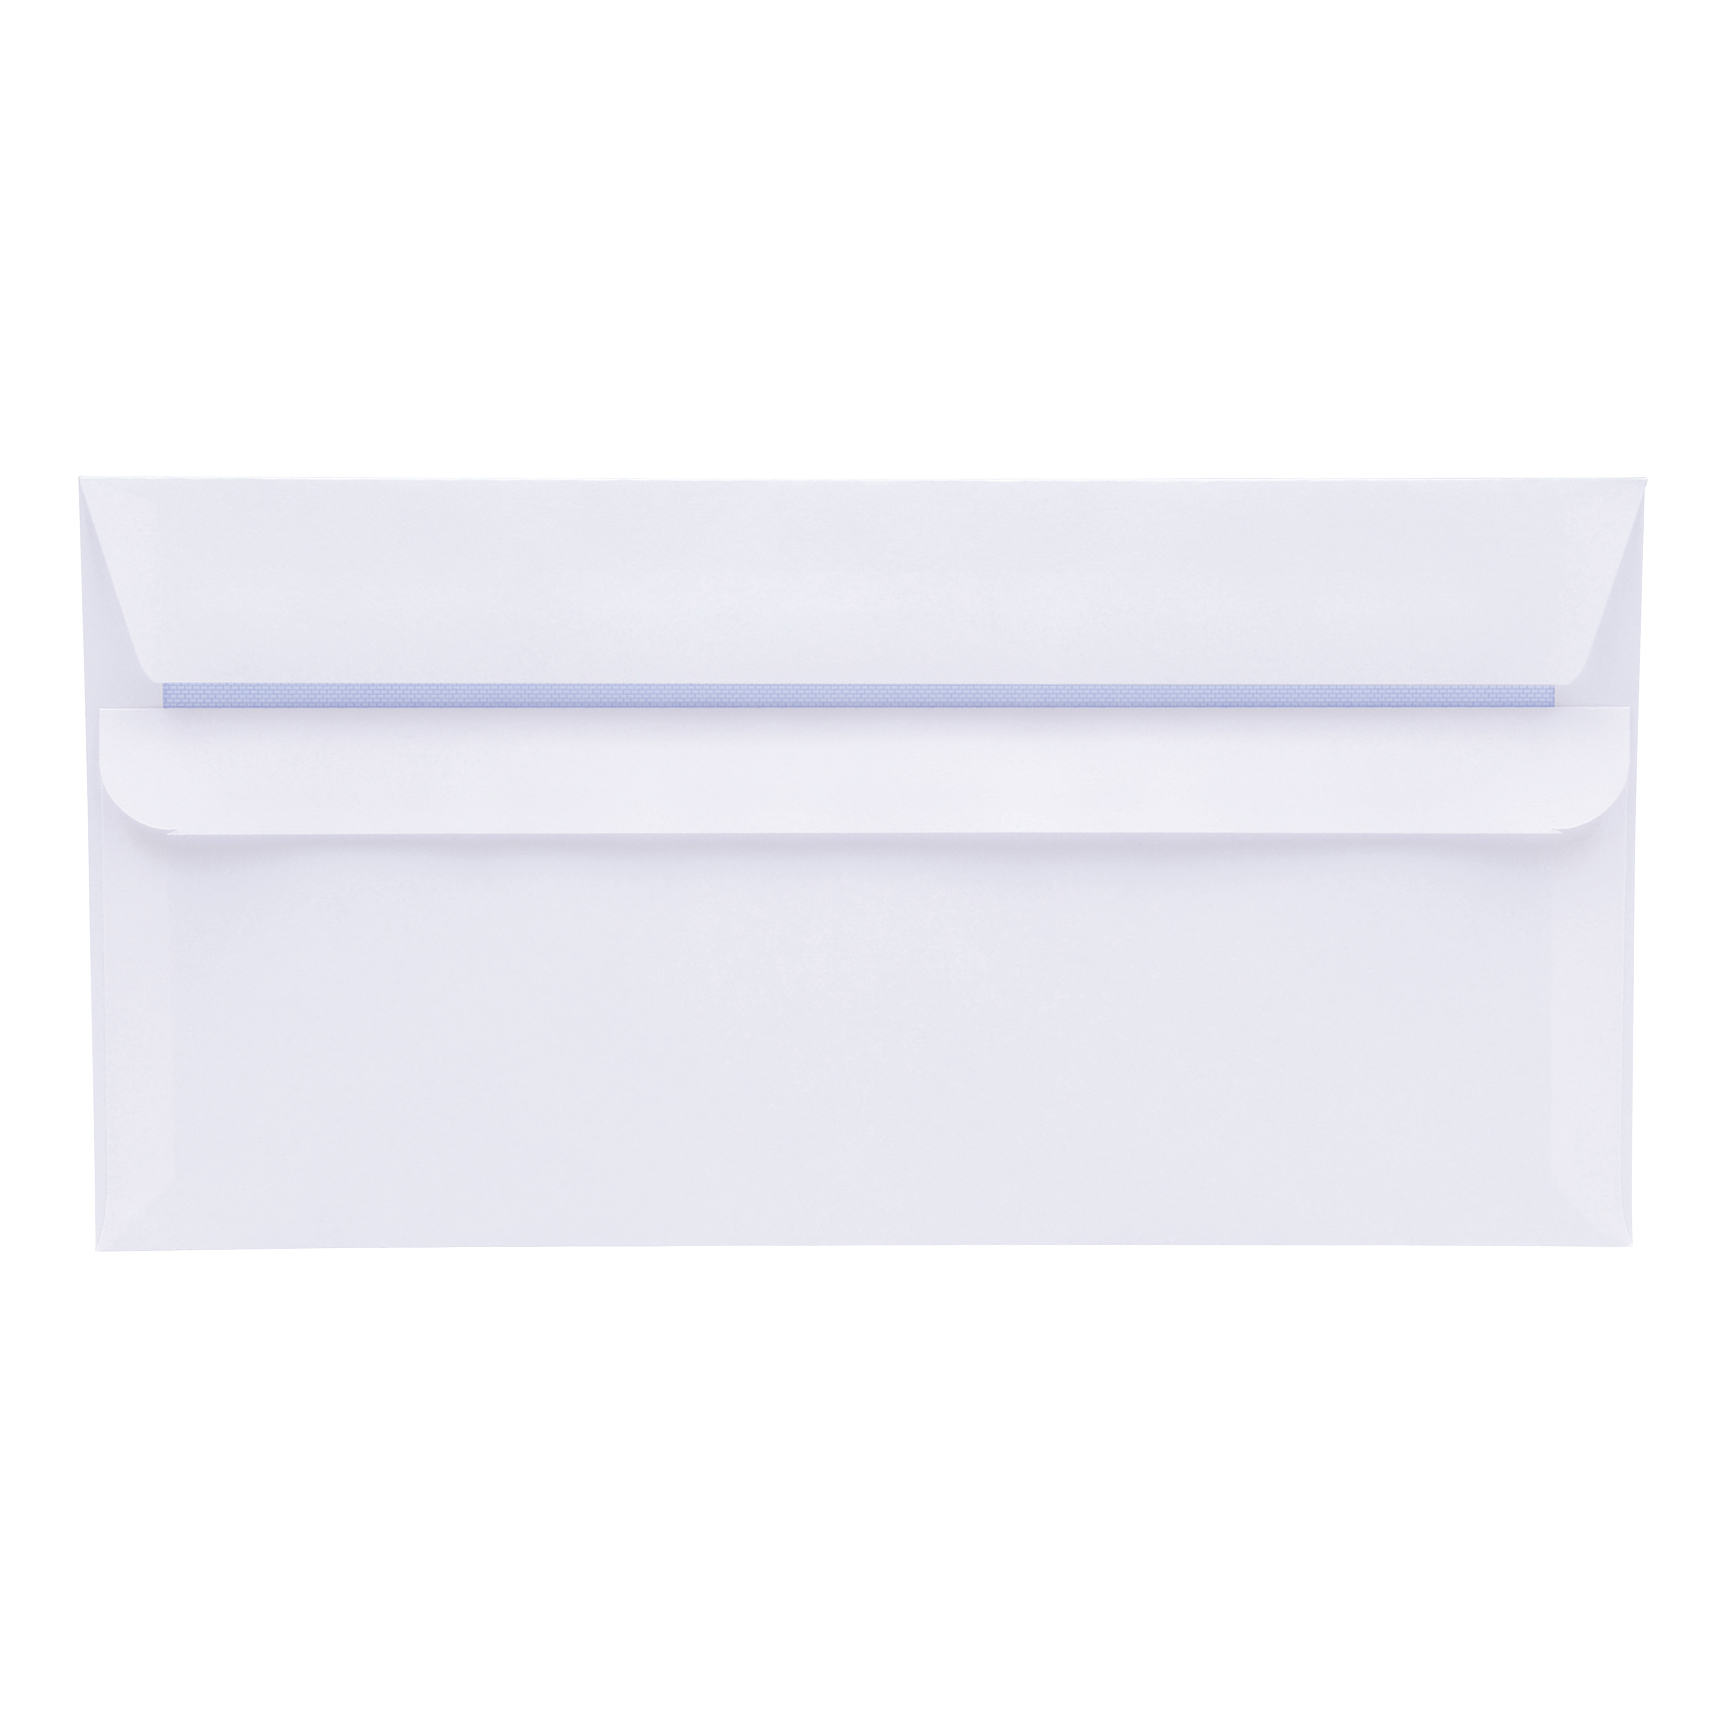 5 Star Office Envelopes PEFC Wallet Self Seal 80gsm DL 220x110mm White Pack 1000